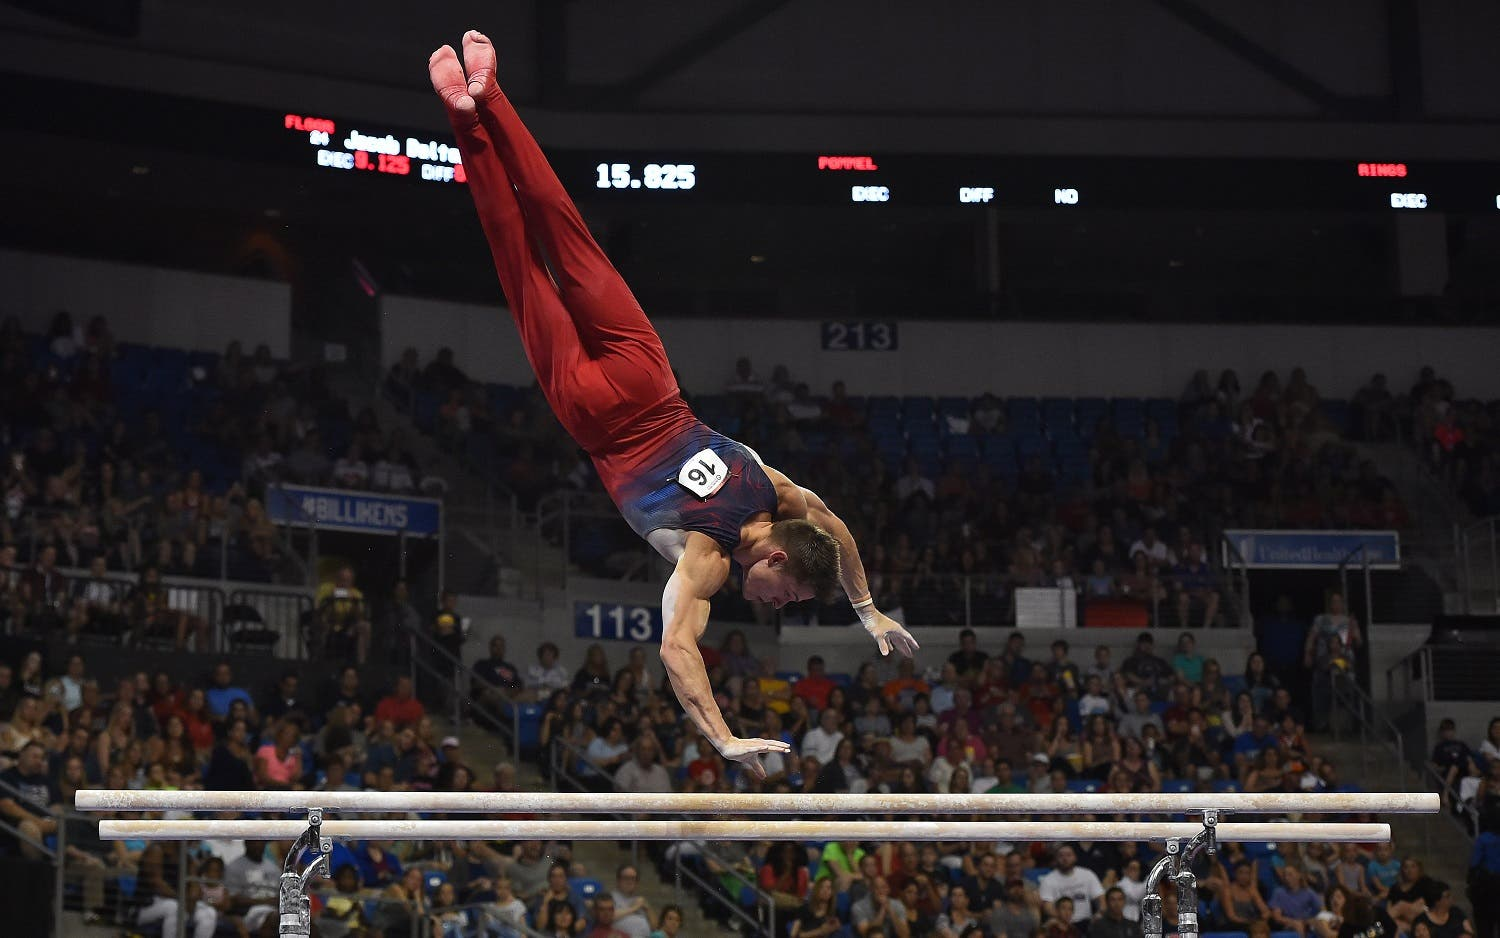 Jacob Dalton competes on the rings during the 2016 USA Gymnastics Olympic Team Trials at Chaifetz Arena,. Mandatory Credit: Jasen Vinlove-USA TODAY Sports